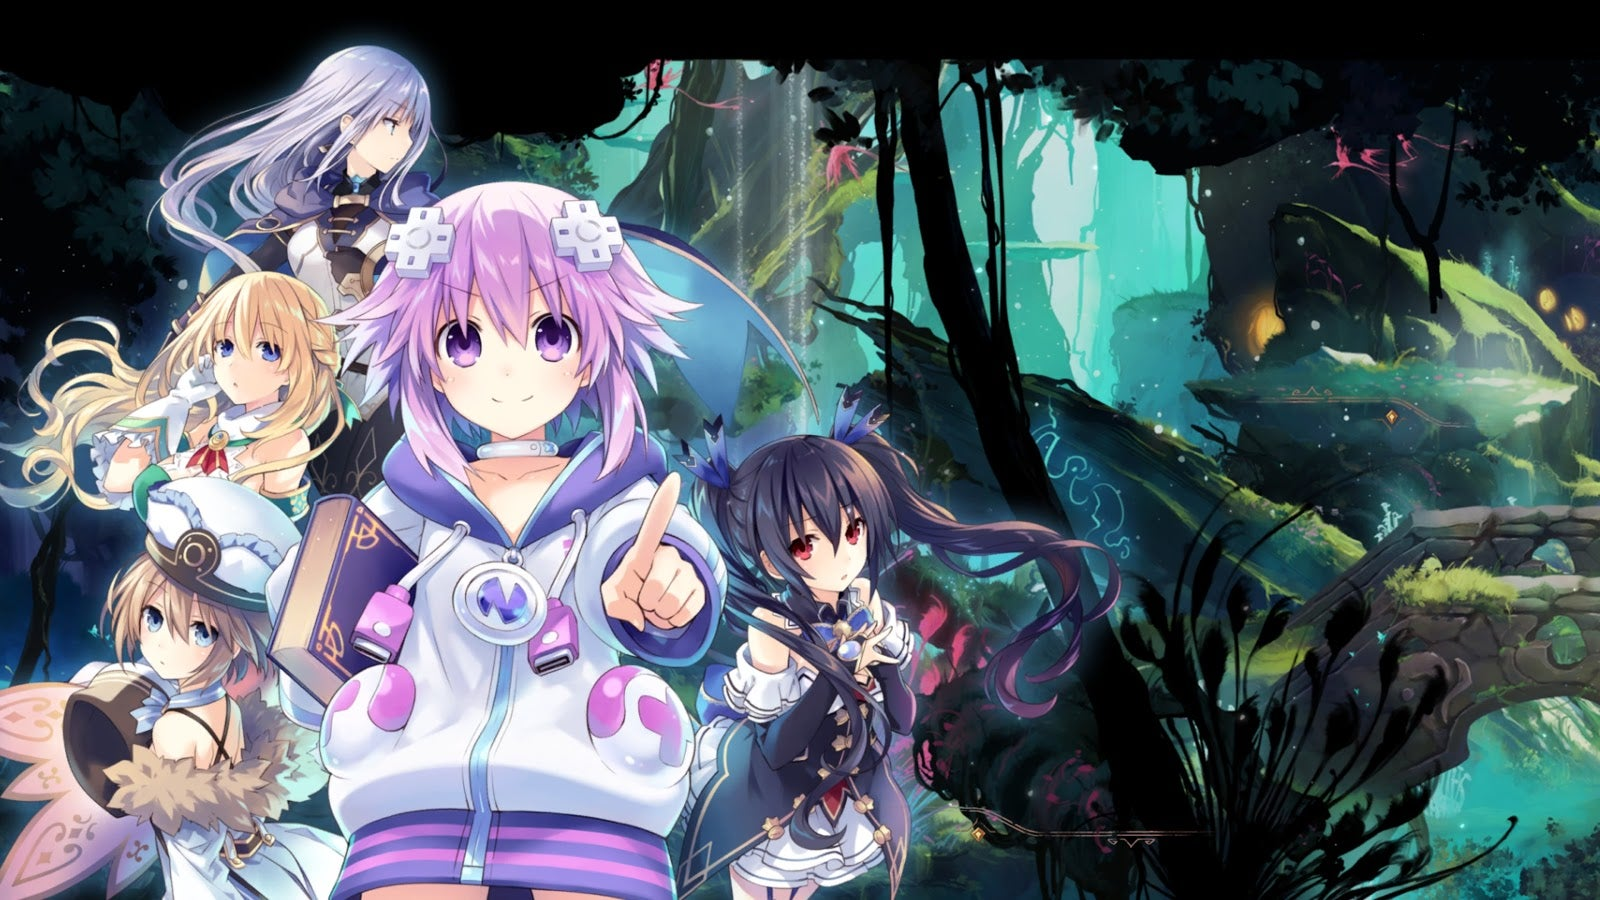 Super Neptunia RPG Is Cute But Shallow, Which Is Exactly What I Wanted